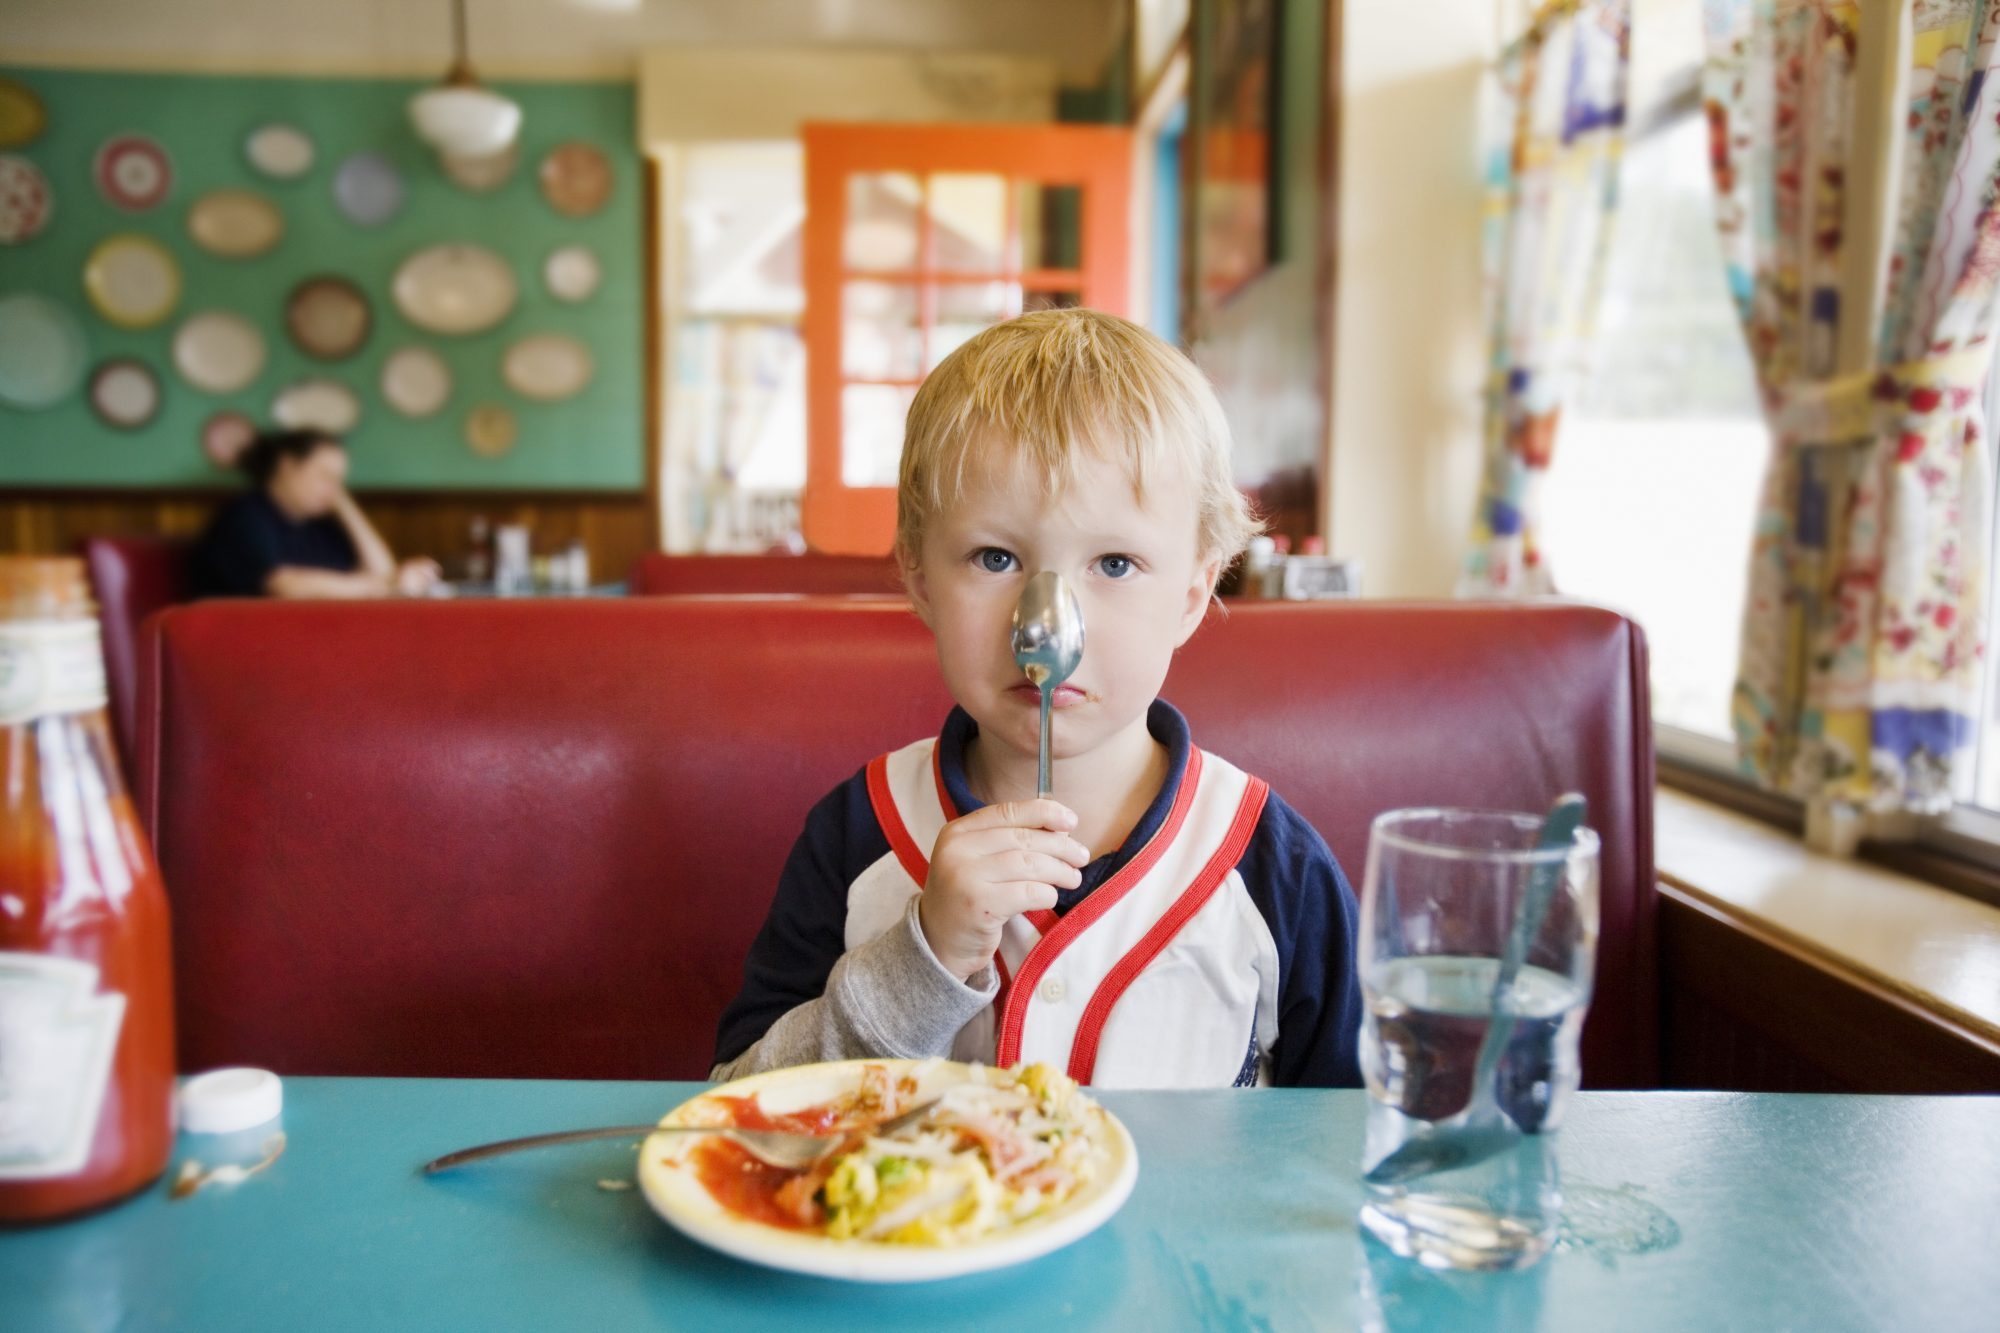 getty-kid-in-restaurant-image